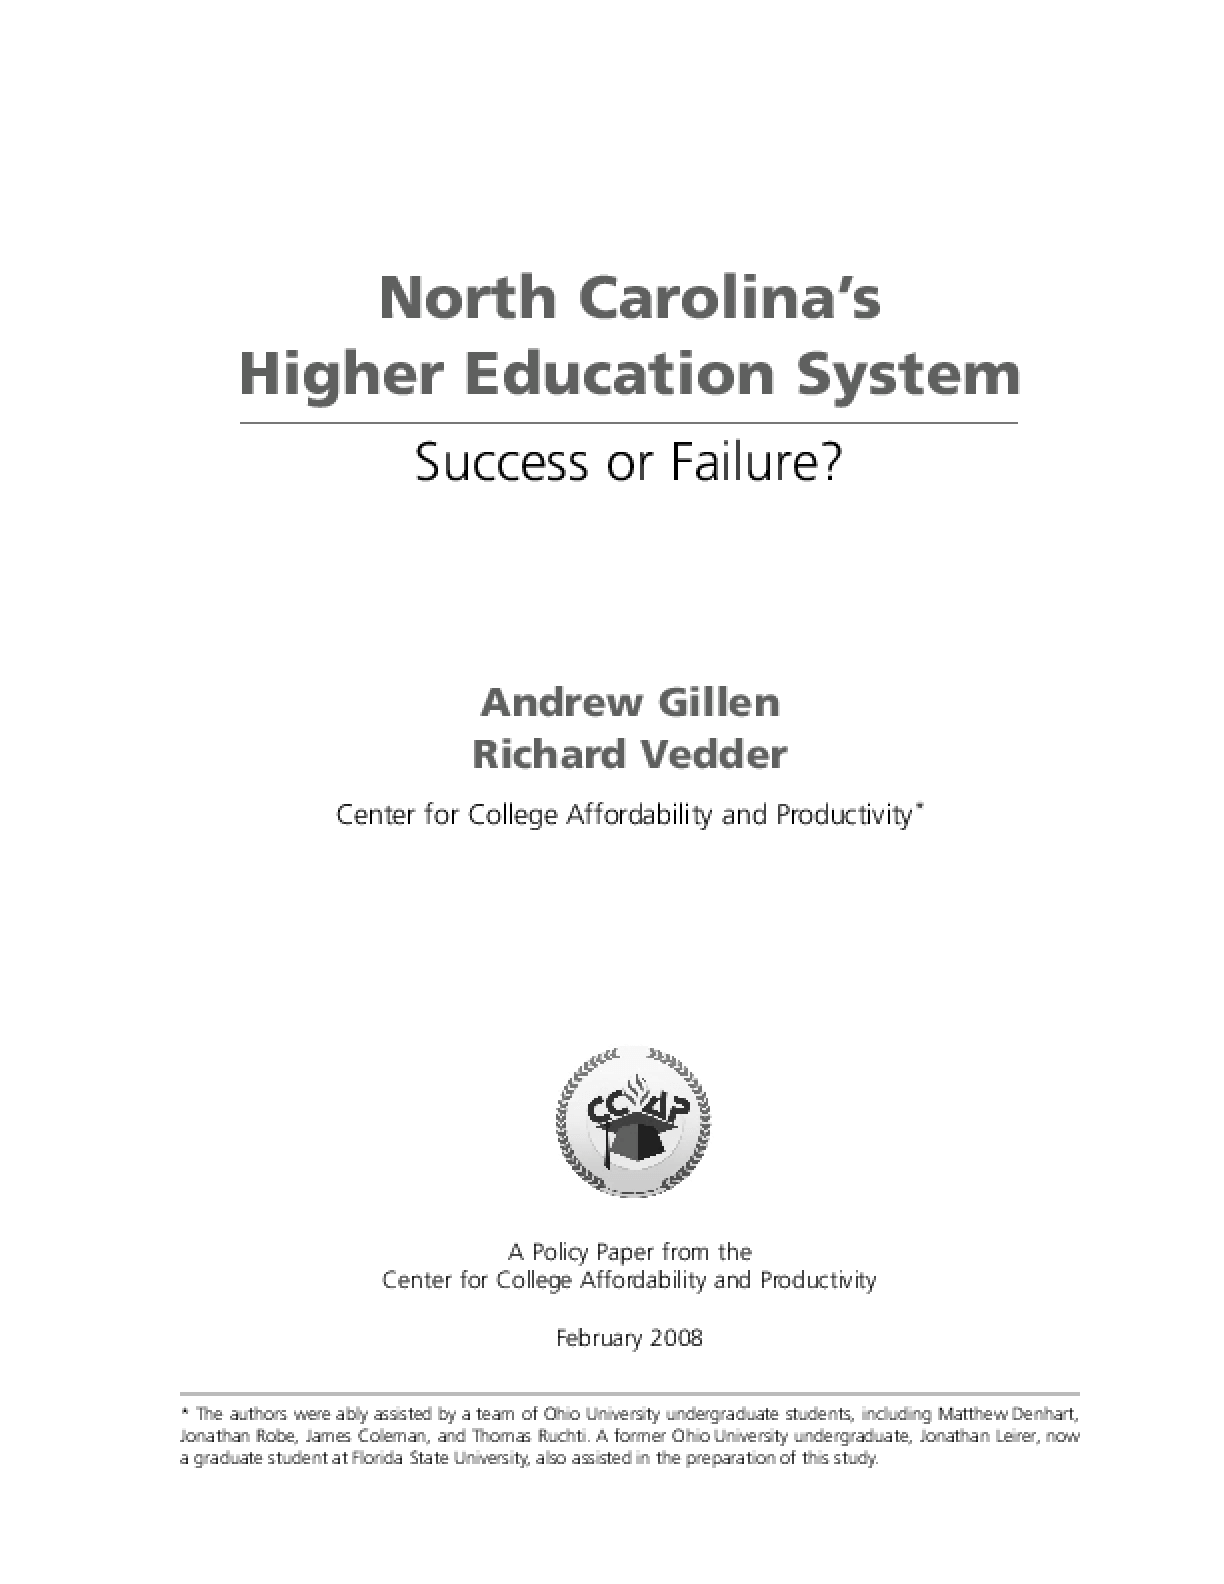 North Carolina's Higher Education System - Success or Failure?